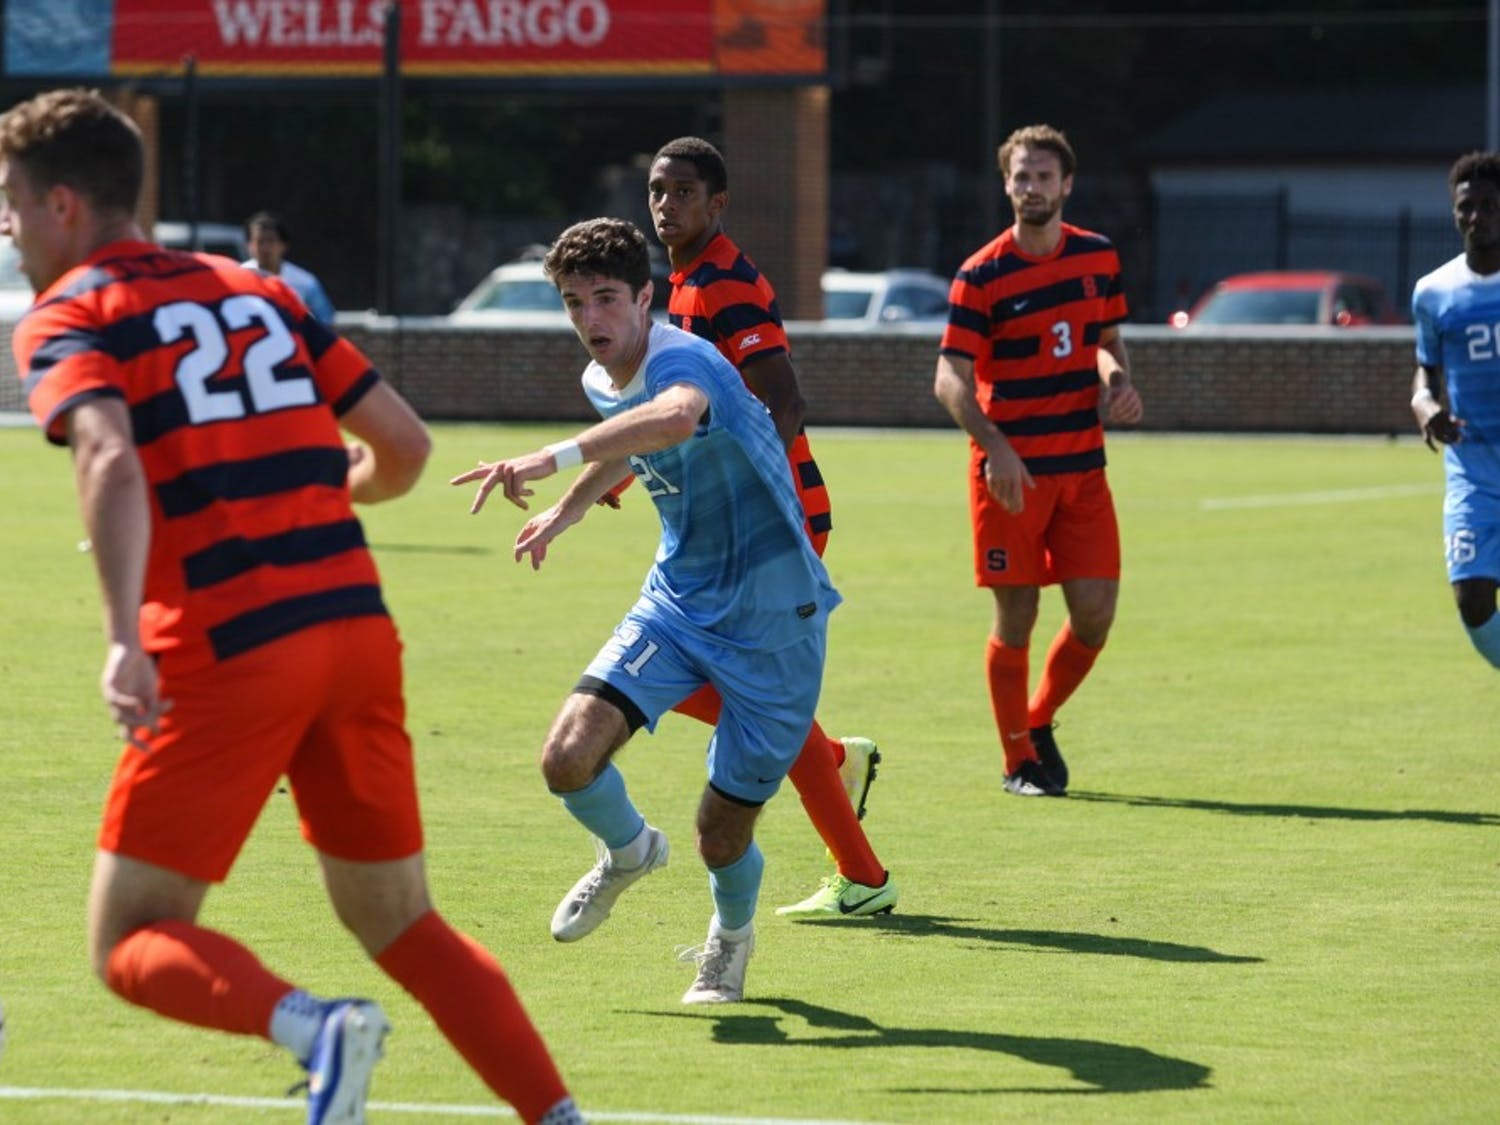 Junior forward Alex Rose (21) runs after the ball during a game against Syracuse at Dorrance Field on Saturday, Oct. 12, 2019. The Tar Heels lost 3-4.